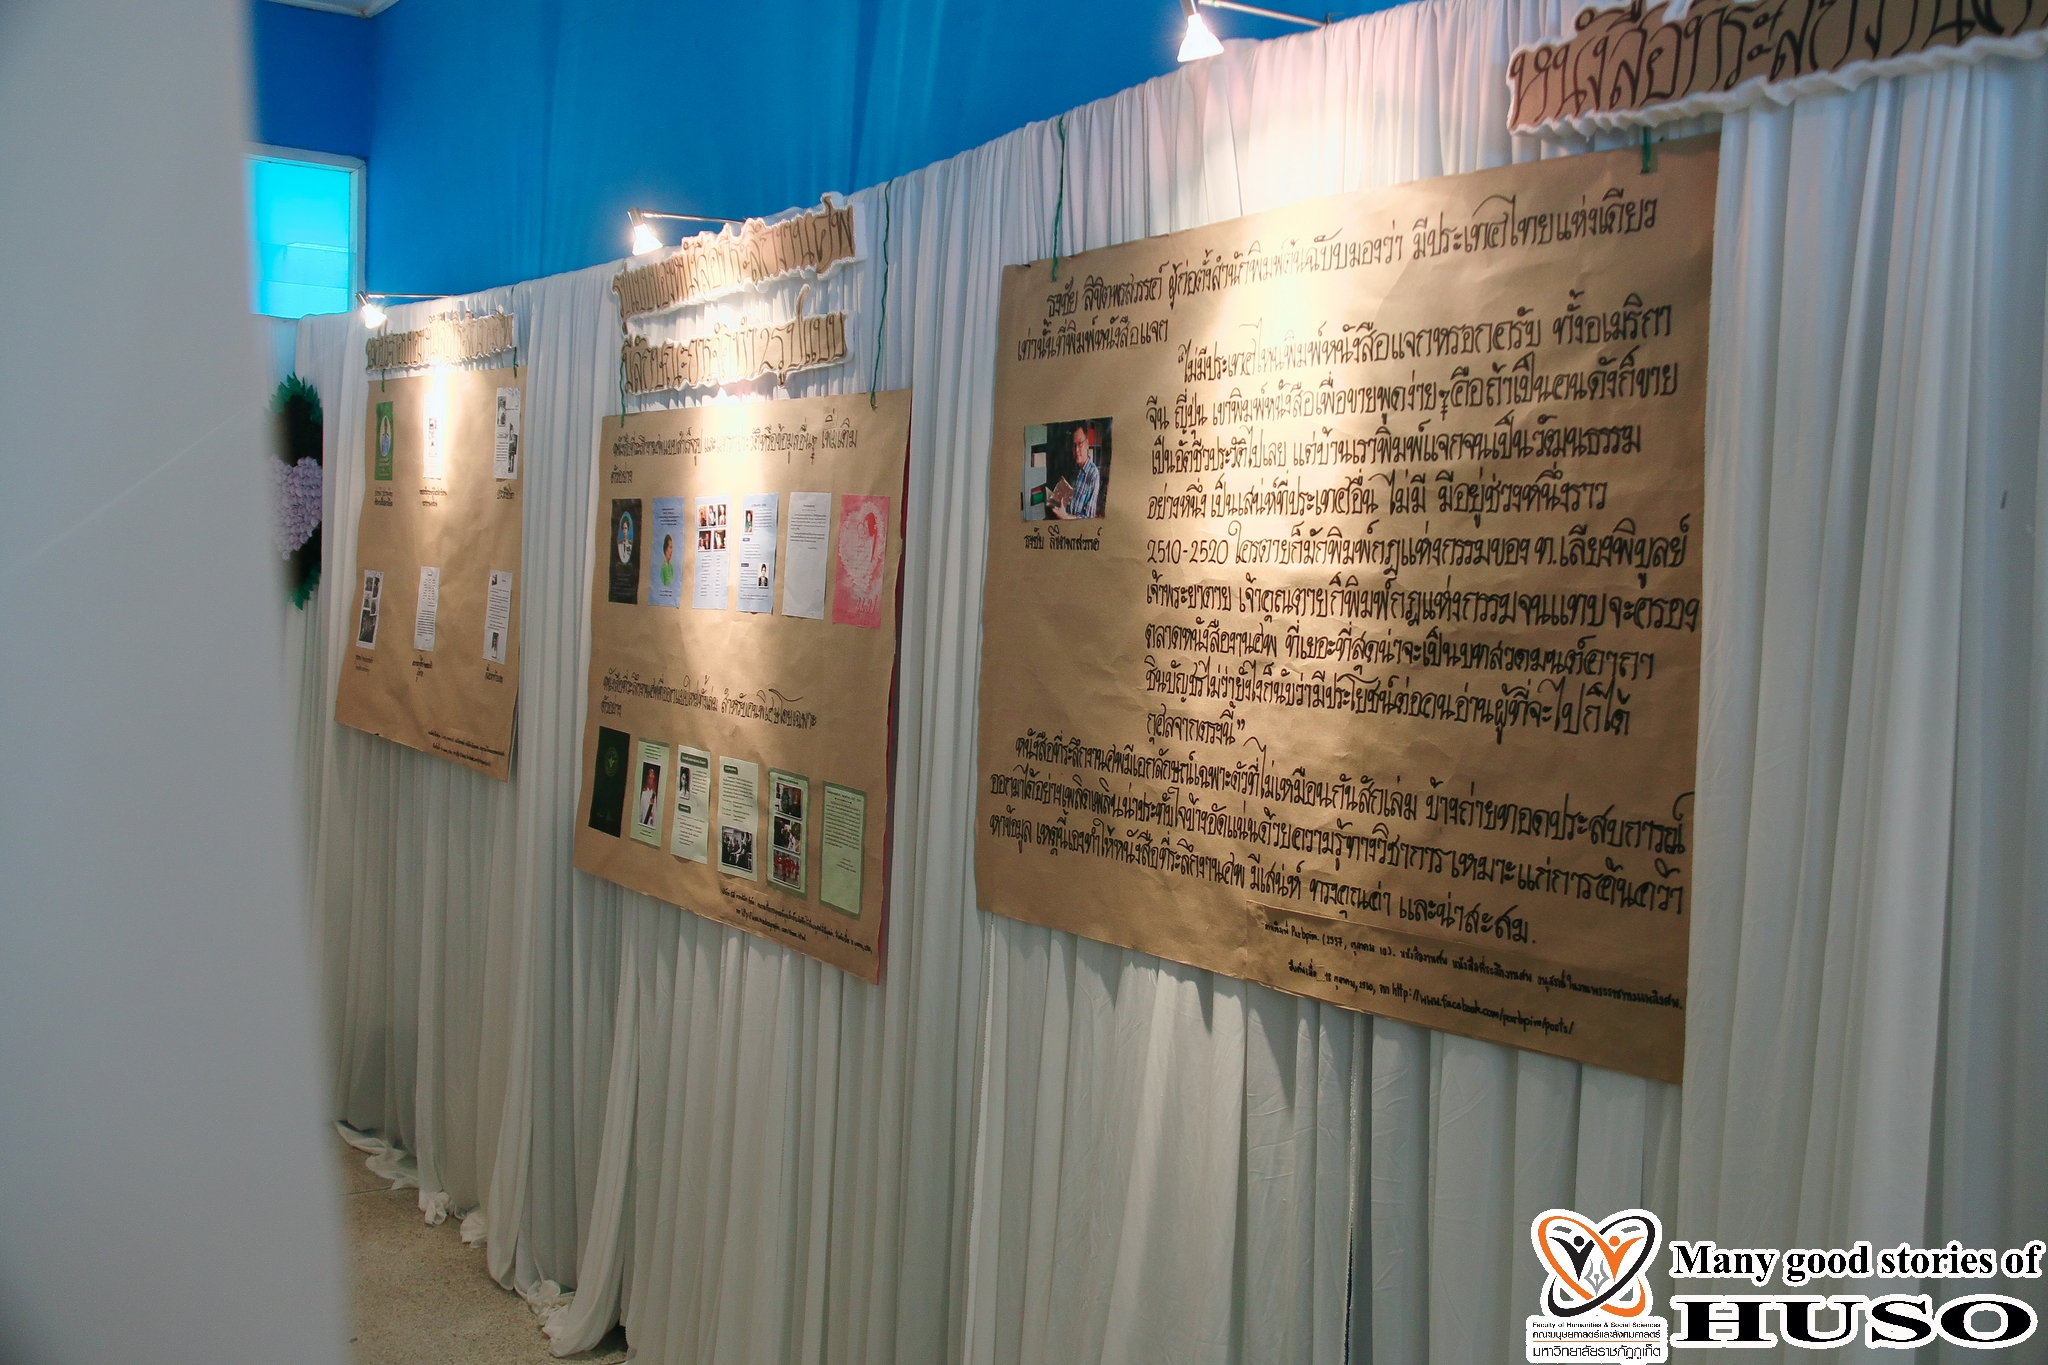 HUSO PKRU Information and Library Science Exhibition Book of Memorial and Knowledge Tung Lanna 5